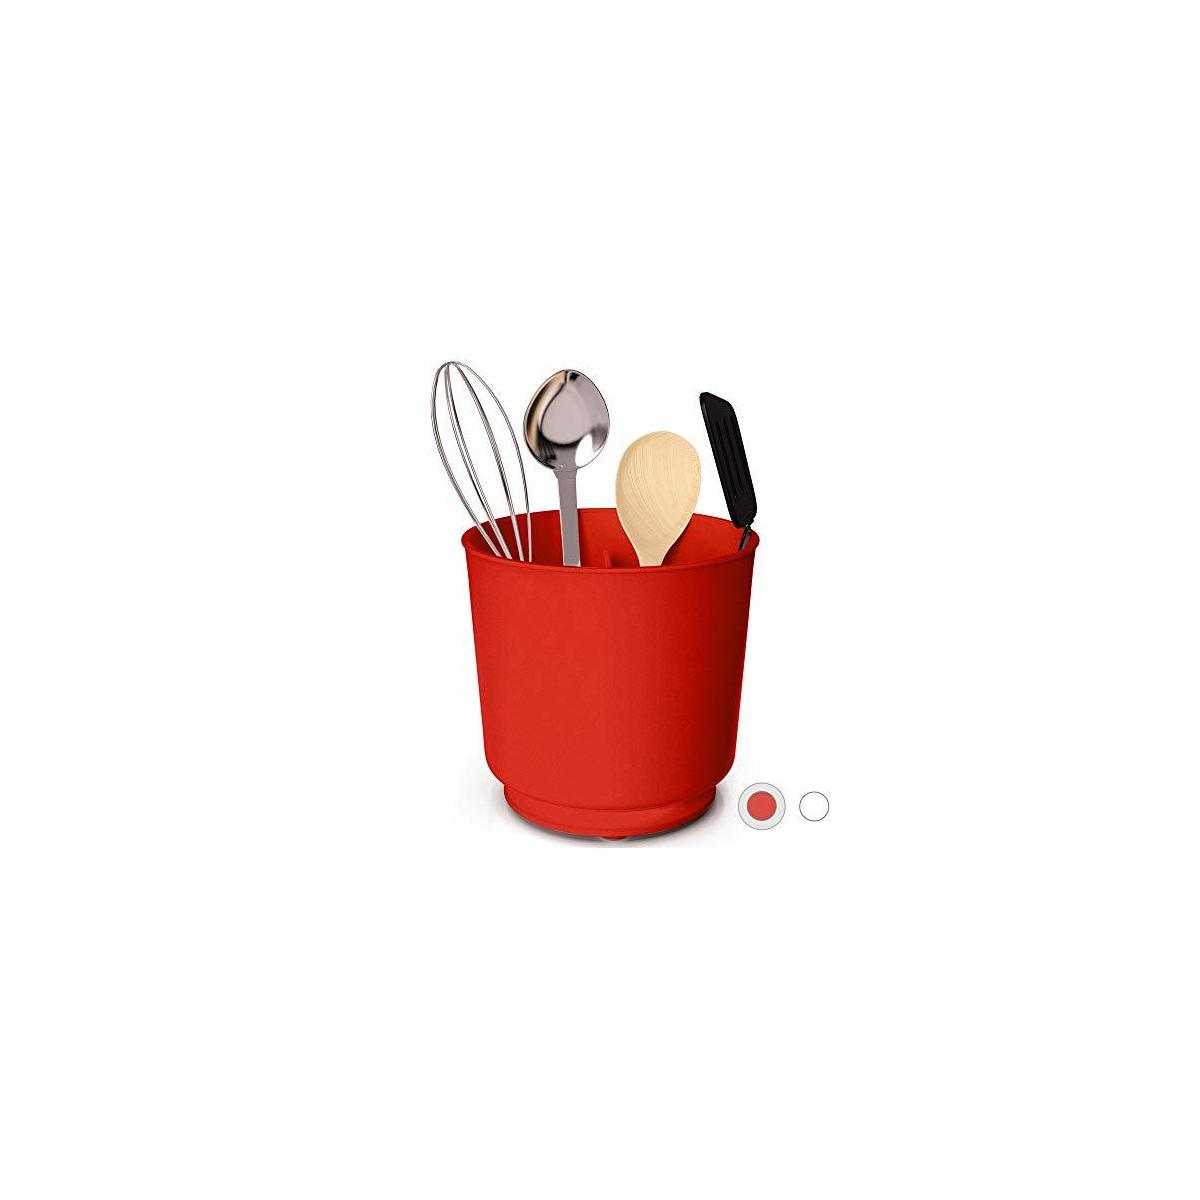 Extra Large Rotating Utensil Holder with Sturdy No-Tip Weighted Base, Removable Divider, And Gripped Insert | Rust Proof and Dishwasher Safe: Red by Cooler Kitchen